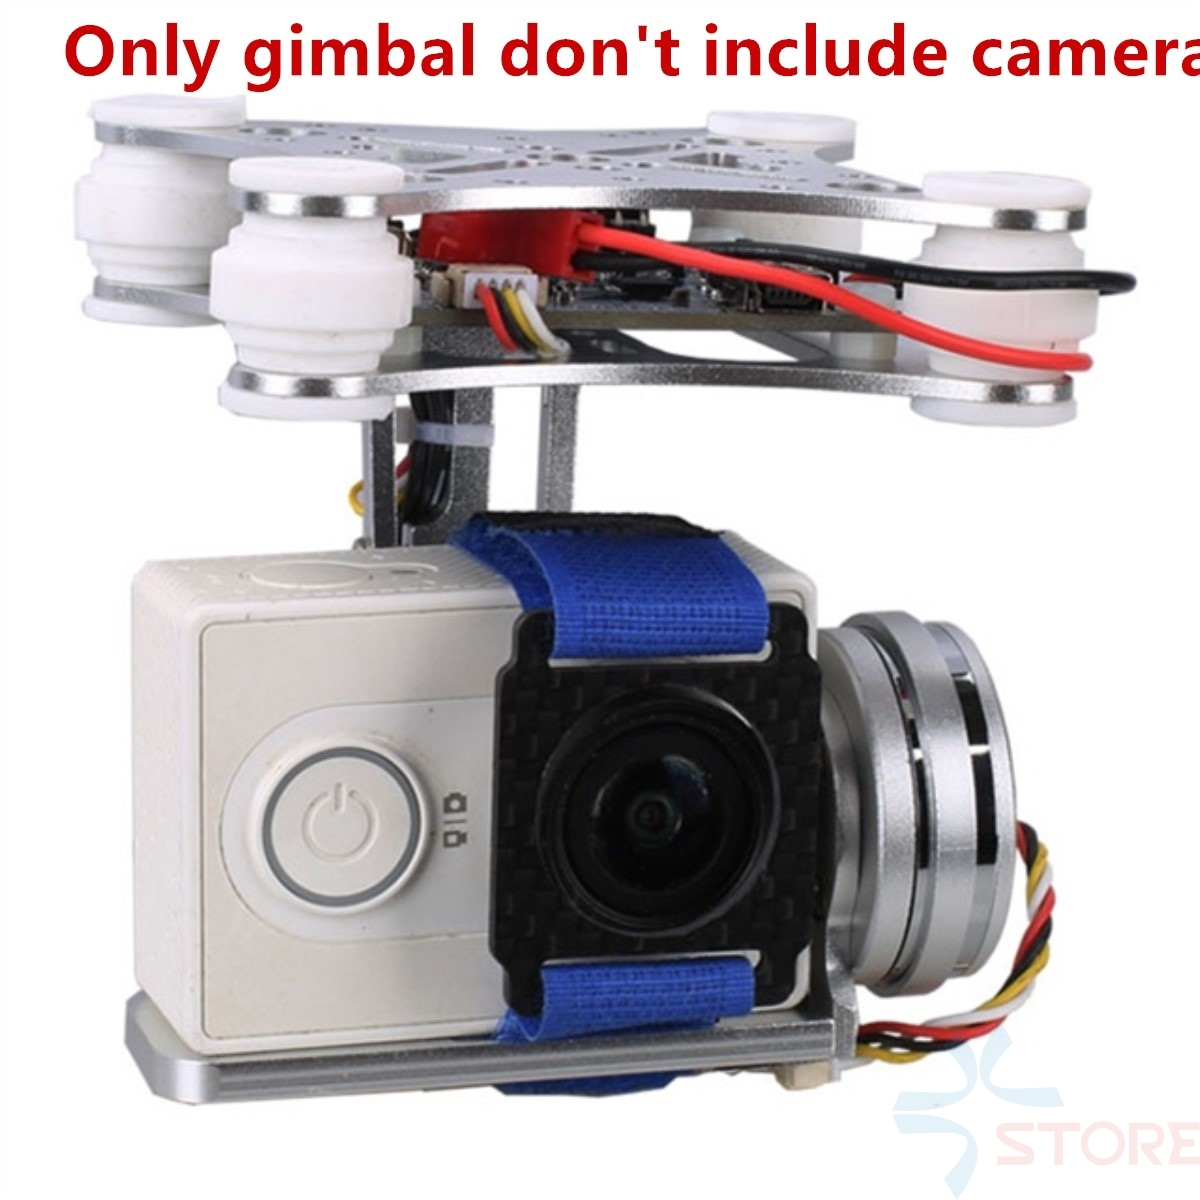 2 Aixs 2D Brushless Camera Gimbal for Gopro SJCAM XIAOMI YI Action Camera Eken F450 F550 S500 FPV Drone Multirotor Quadrocopter